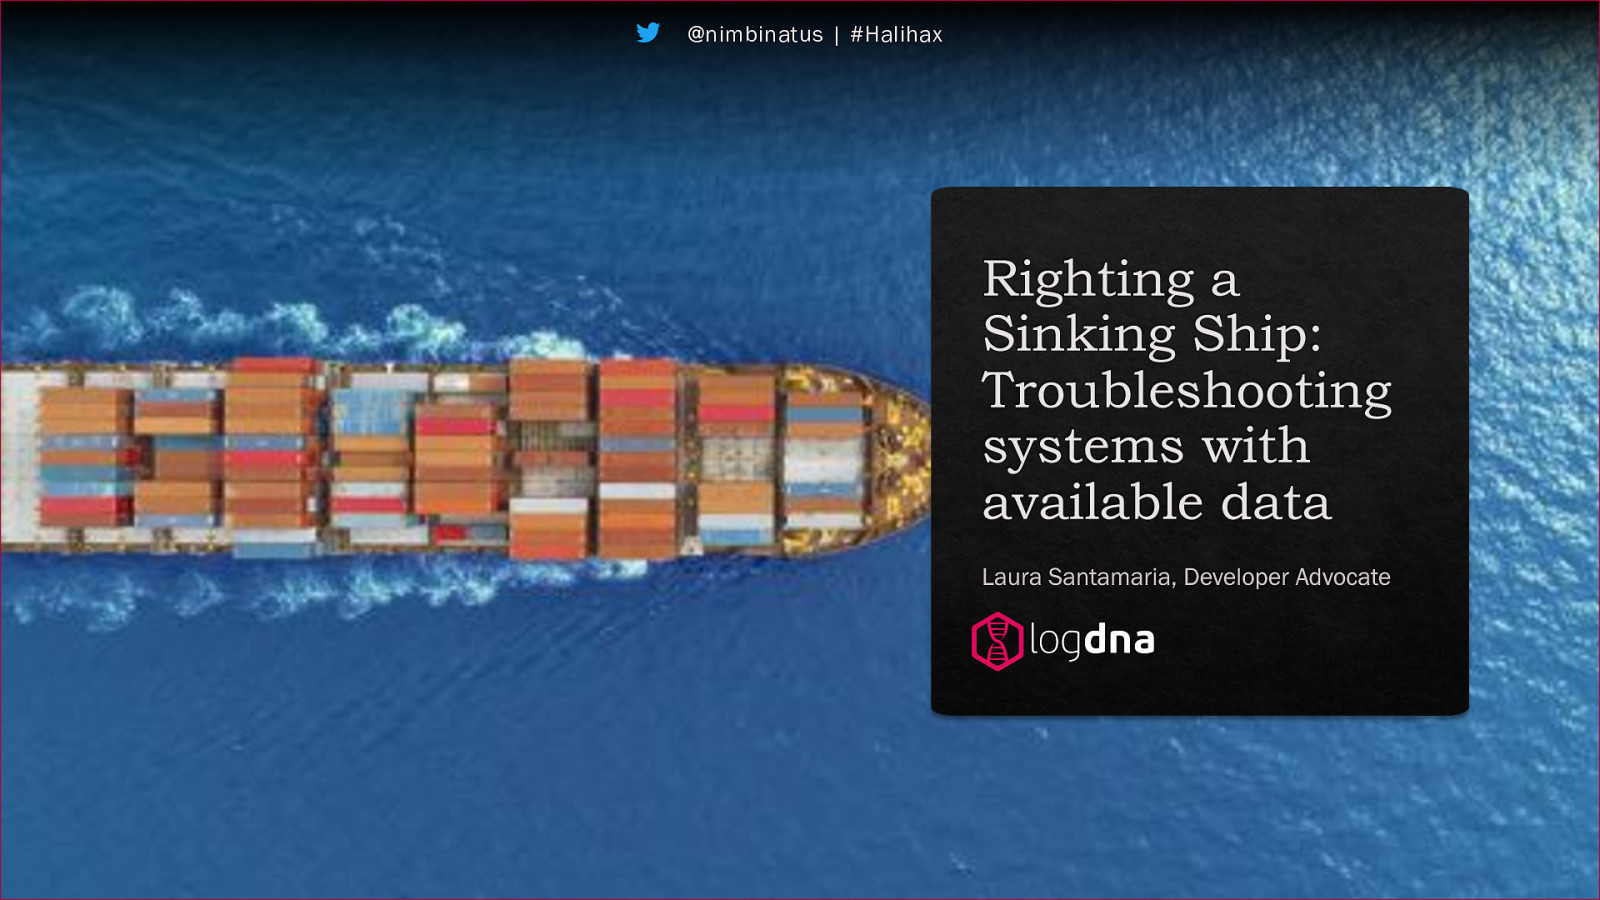 Righting a Sinking Ship: Troubleshooting Systems with Available Data